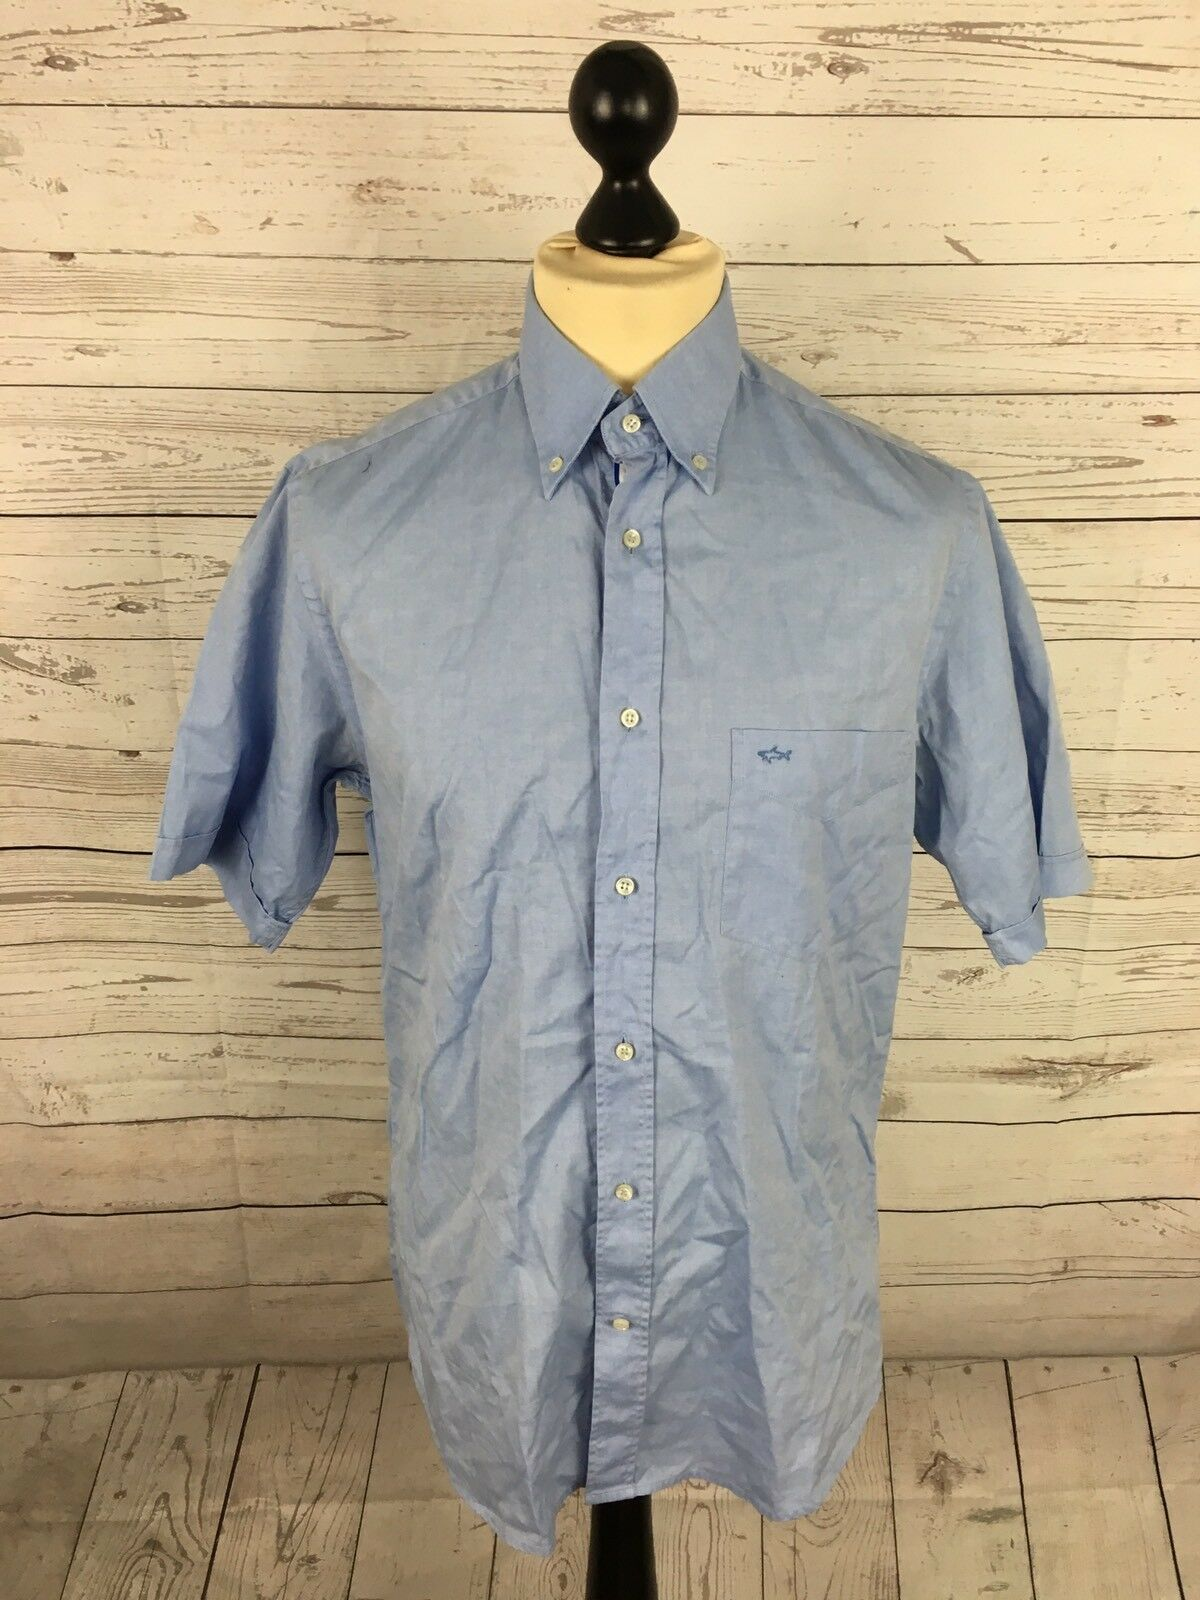 PAUL & SHARK Shirt - Size Medium - Short Sleeved - bluee - Great Condition